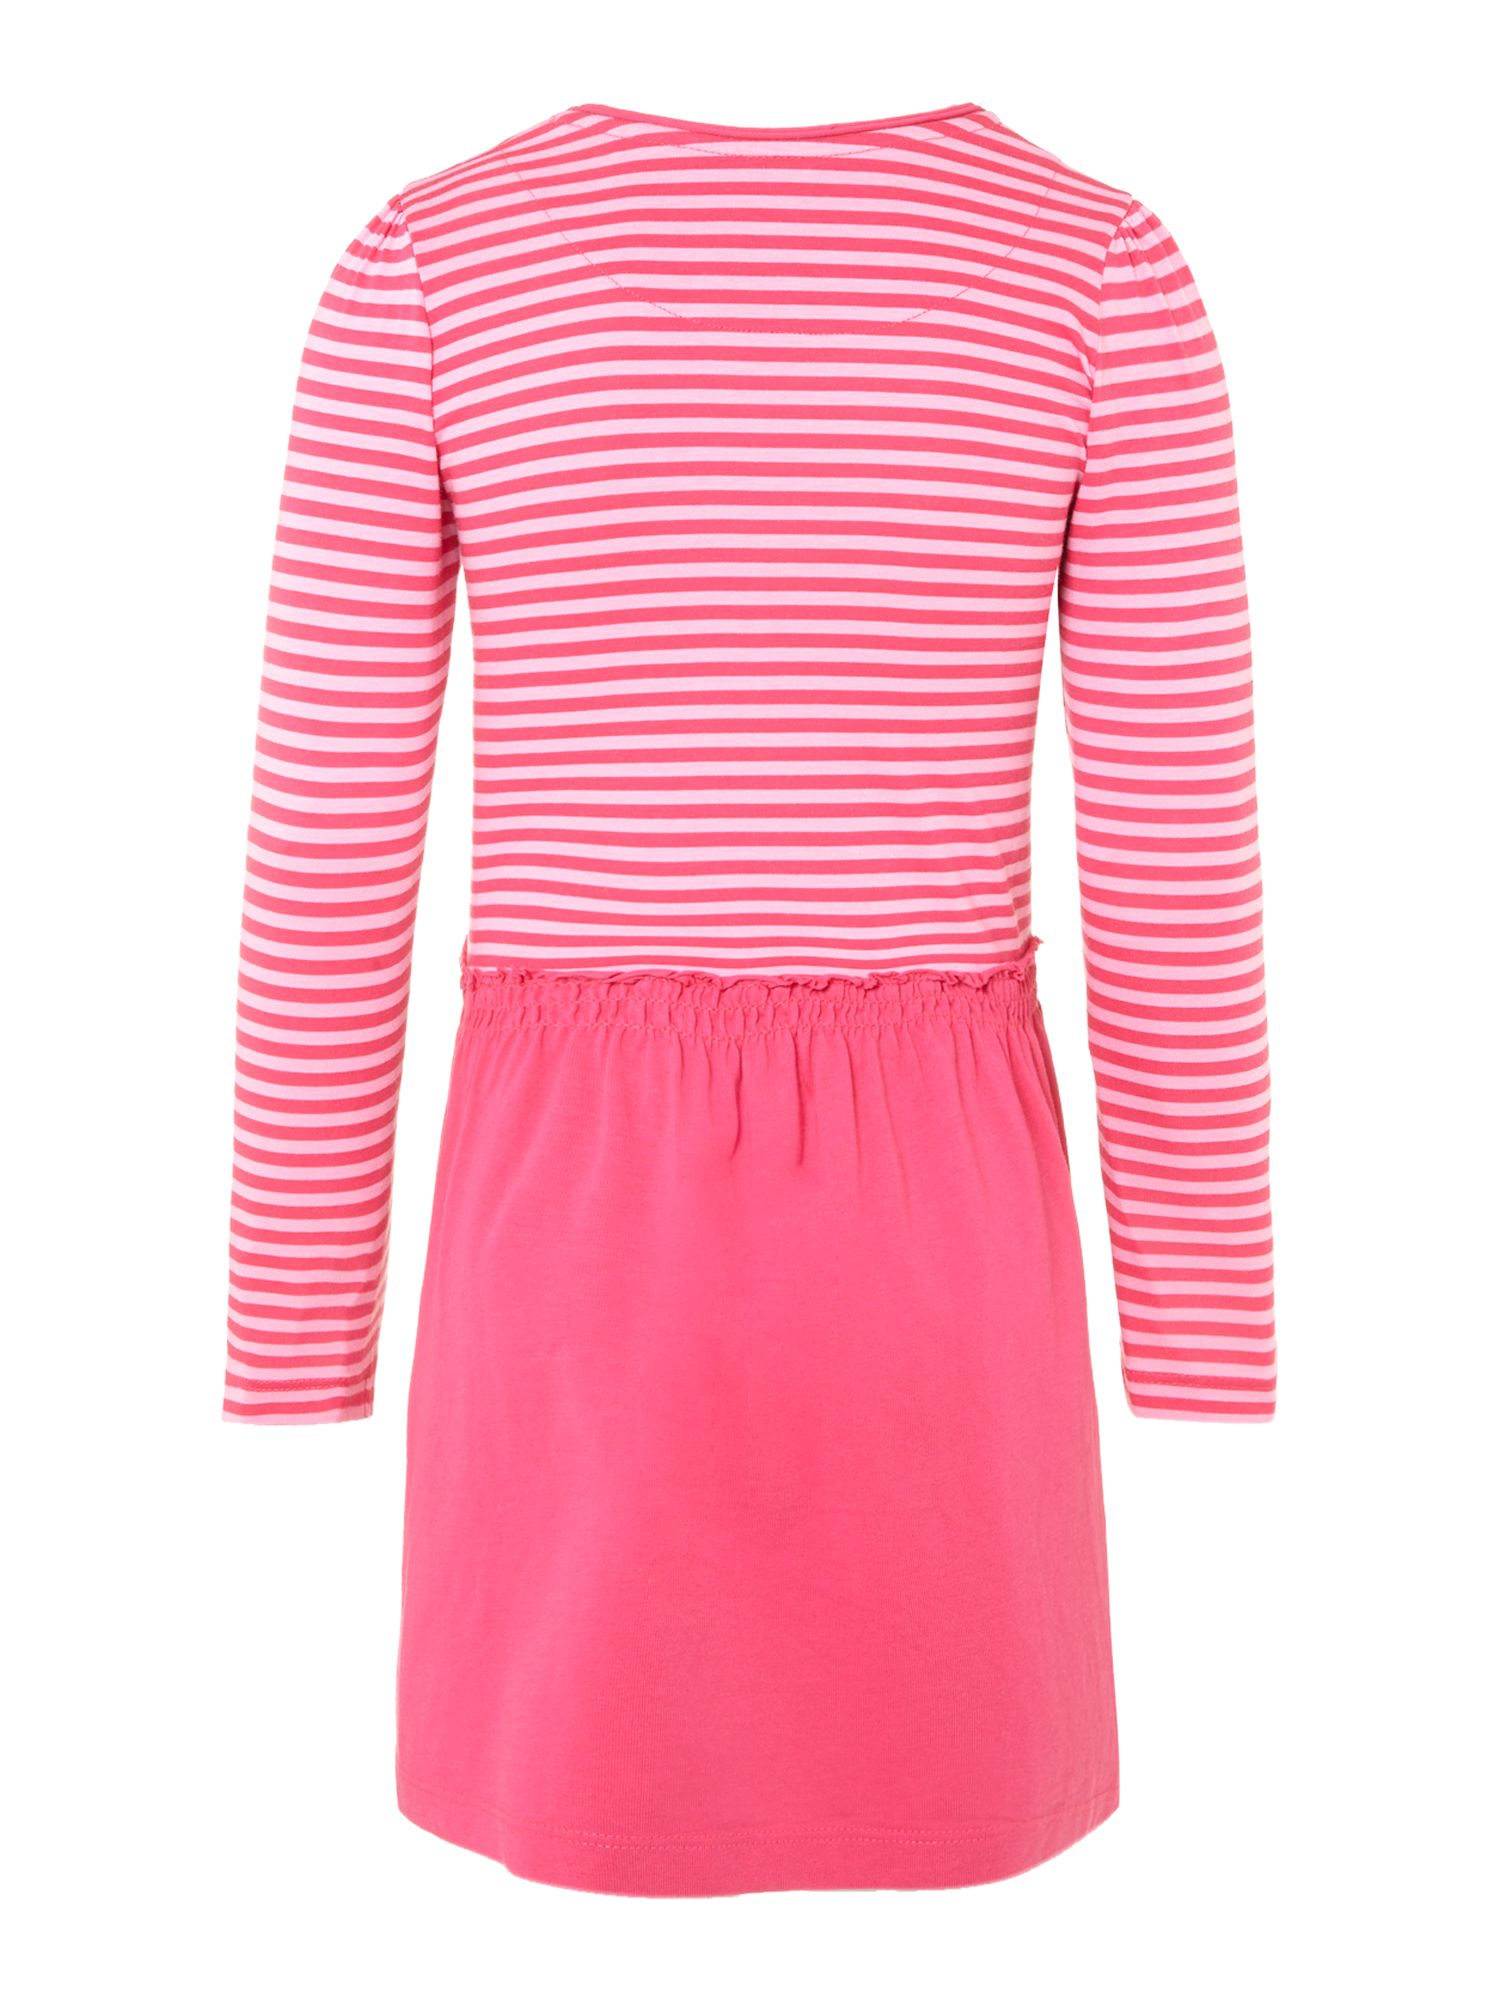 Girl`s striped top dress